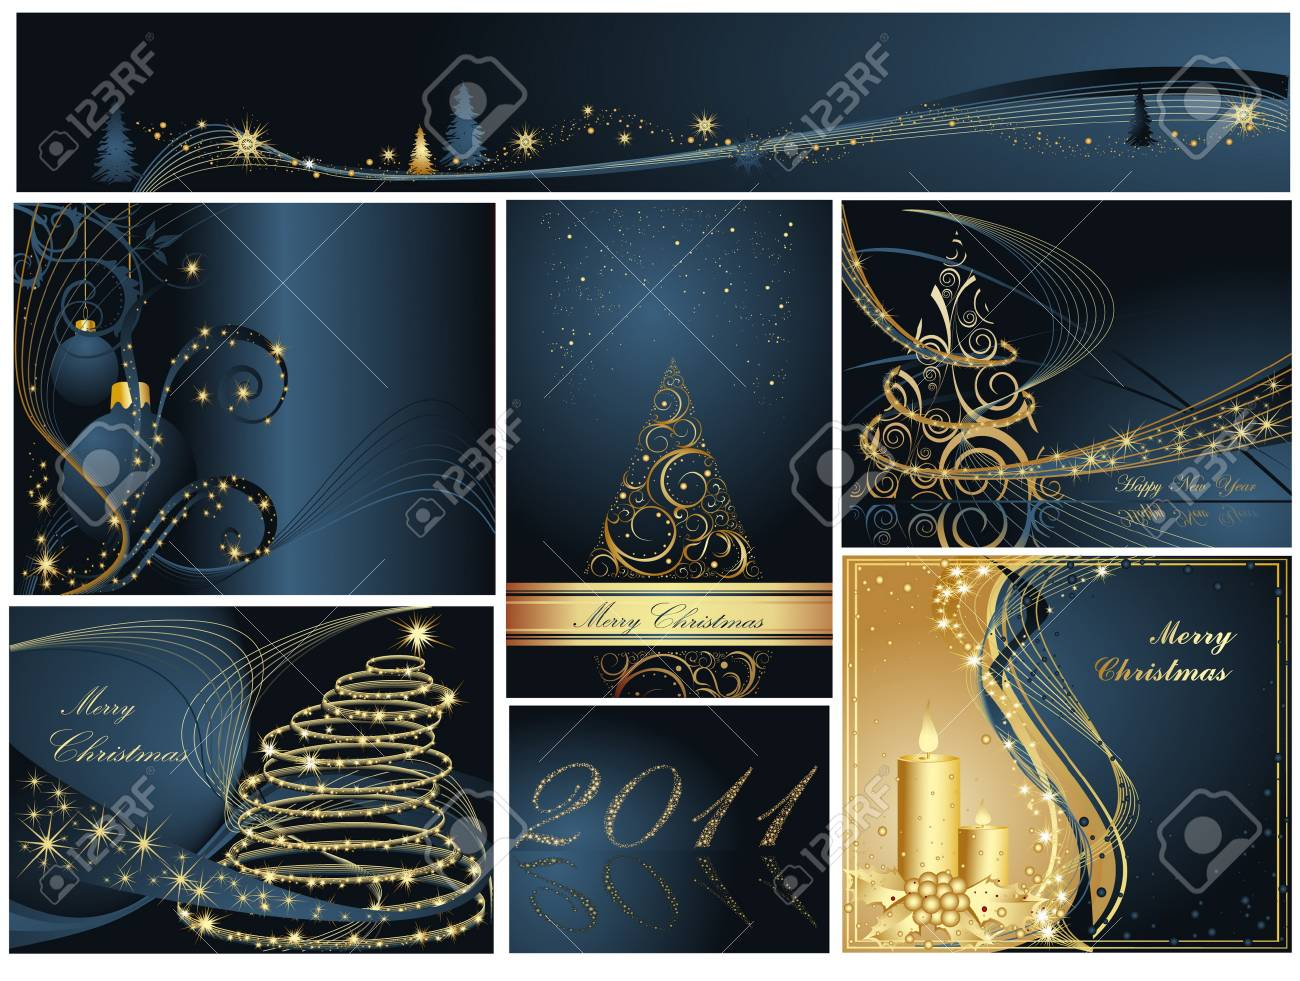 Merry Christmas and Happy New Year collection Stock Vector - 7159869